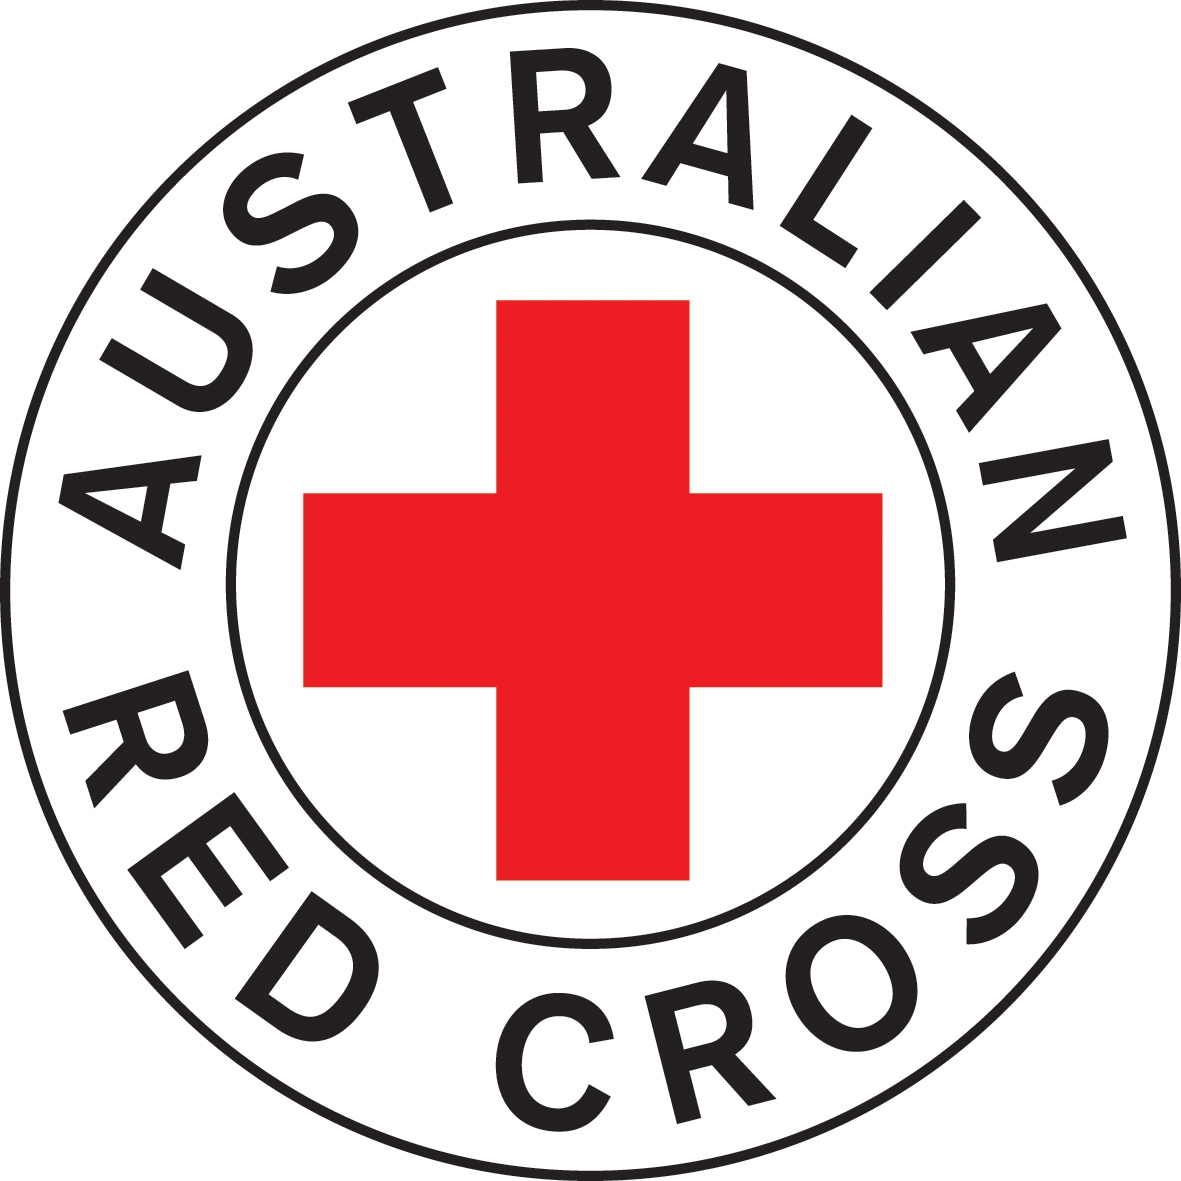 Red Cross clipart nurse symbol Cross Red related Clipart Illustrations